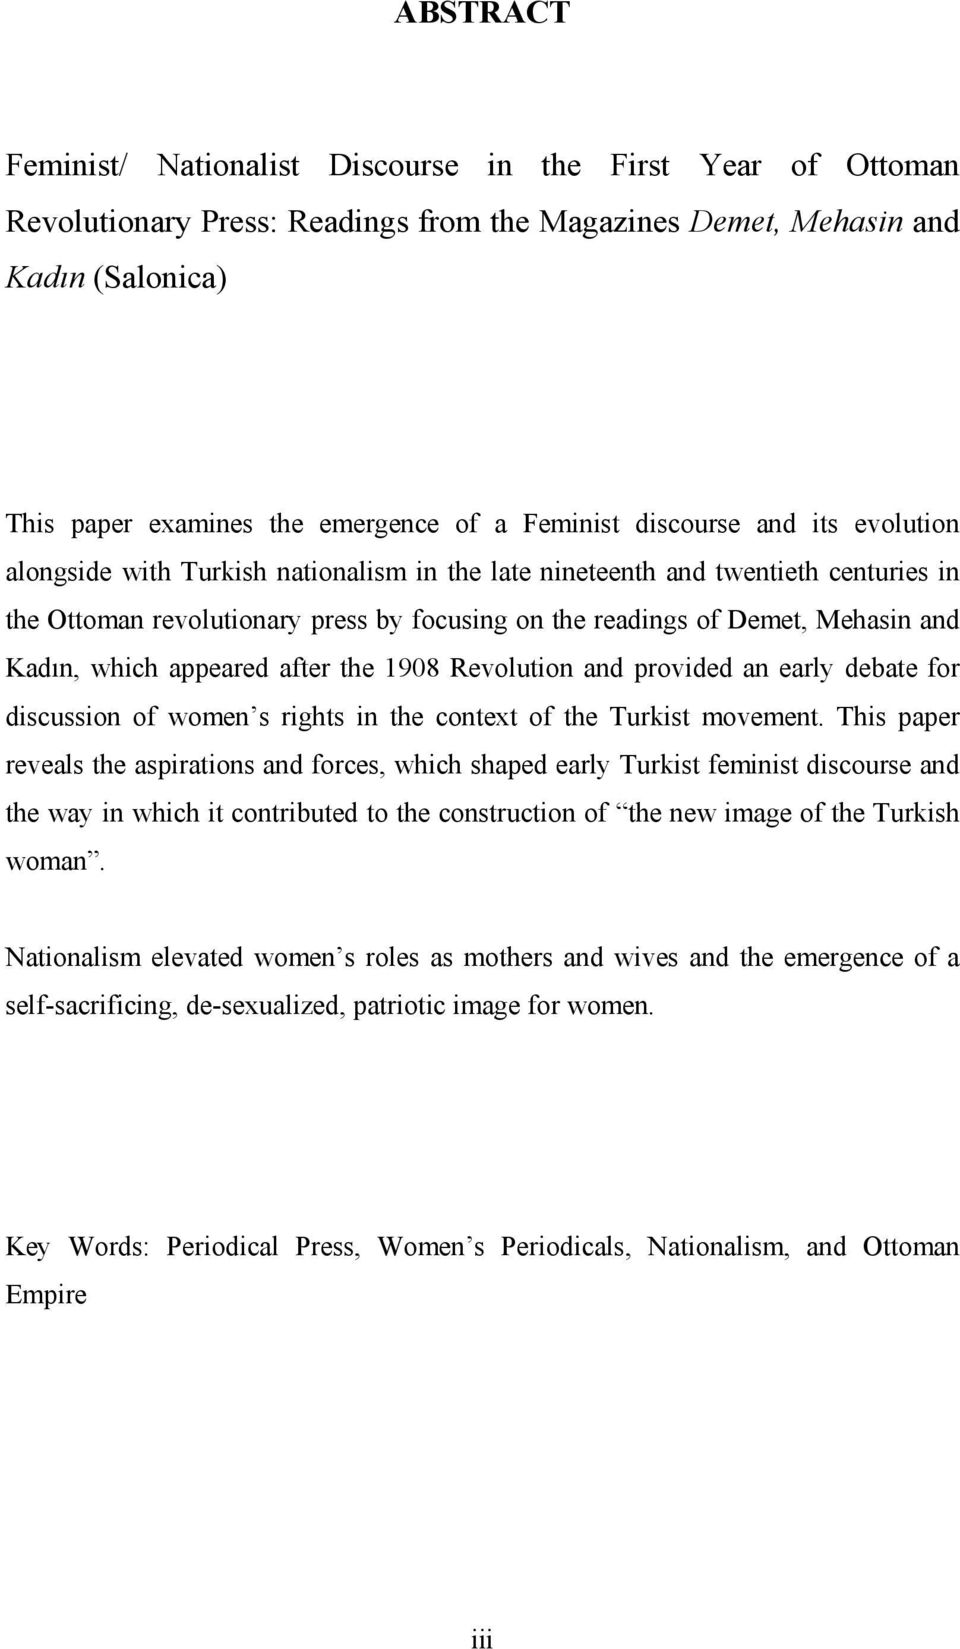 and Kadın, which appeared after the 1908 Revolution and provided an early debate for discussion of women s rights in the context of the Turkist movement.